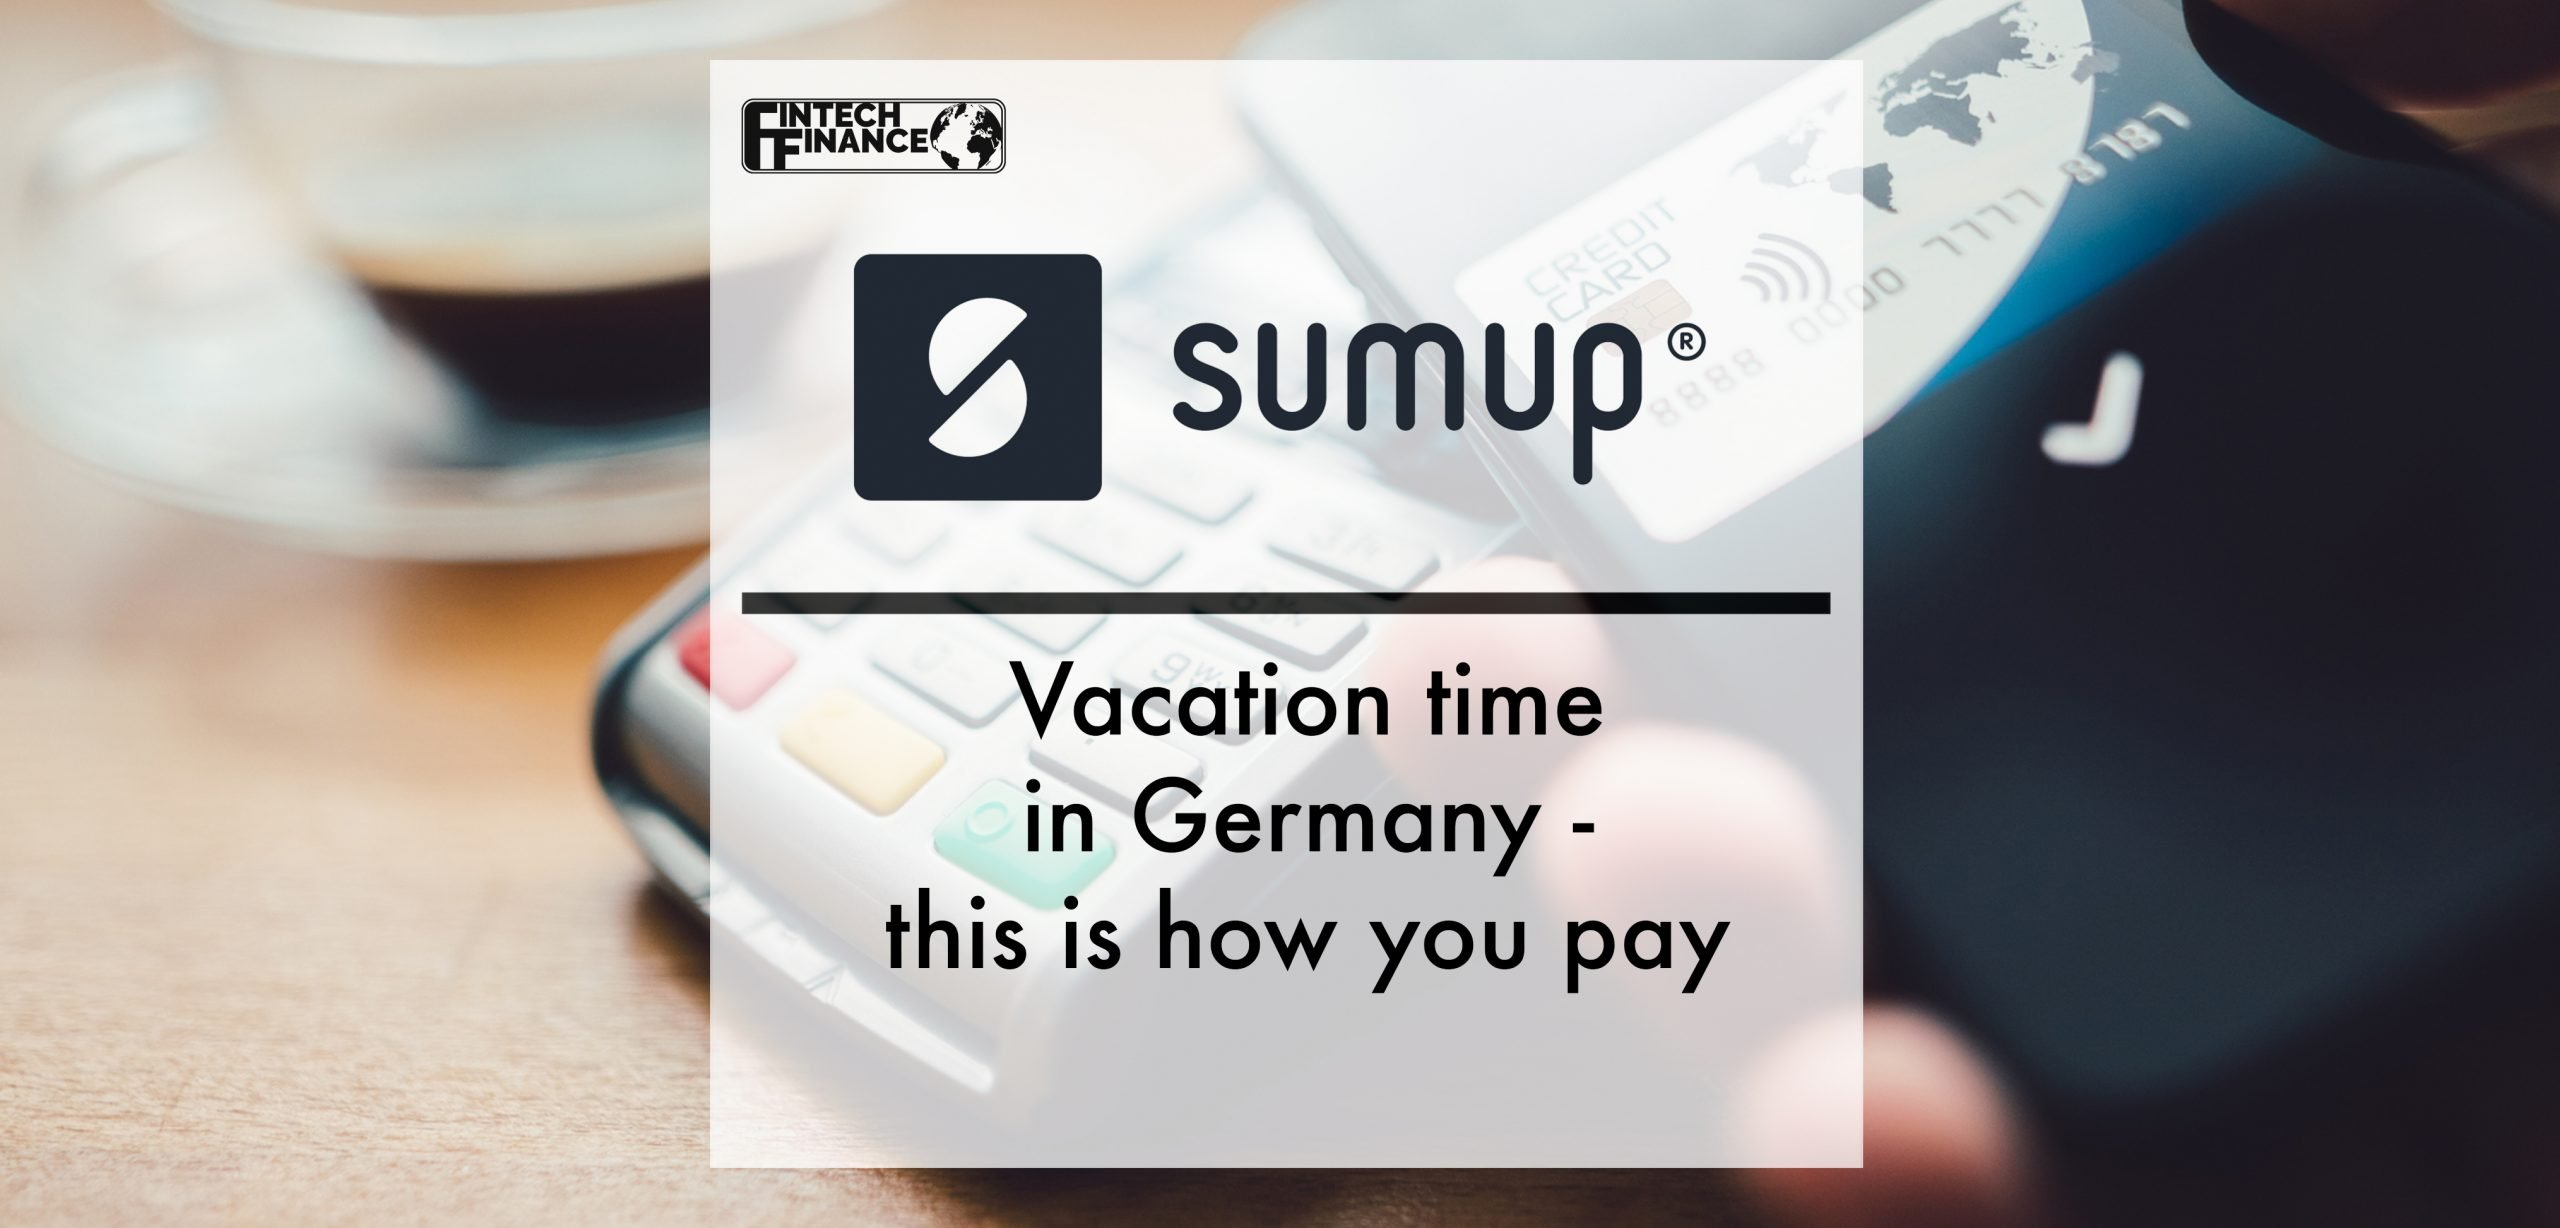 Vacation time in Germany - this is how you pay | Fintech Finance